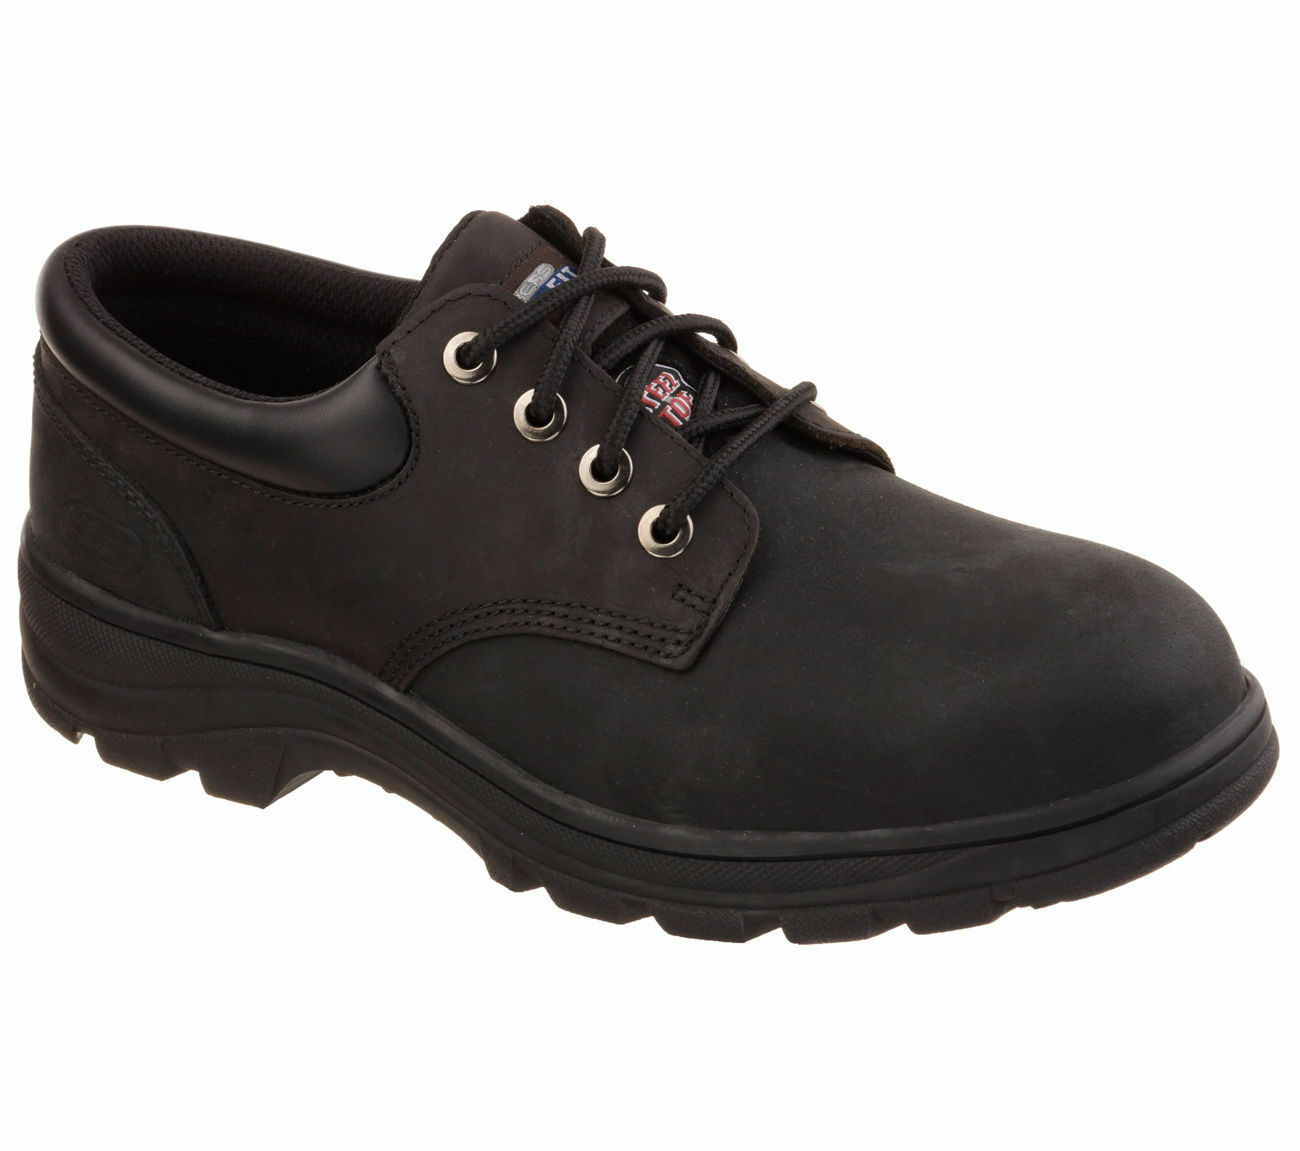 dc0cea39a89 New Authentic Men s Skechers 77047 77047 77047 WORKSHIRE-CORPUS Steel Toes  Shoes sz 8.5 0aab83